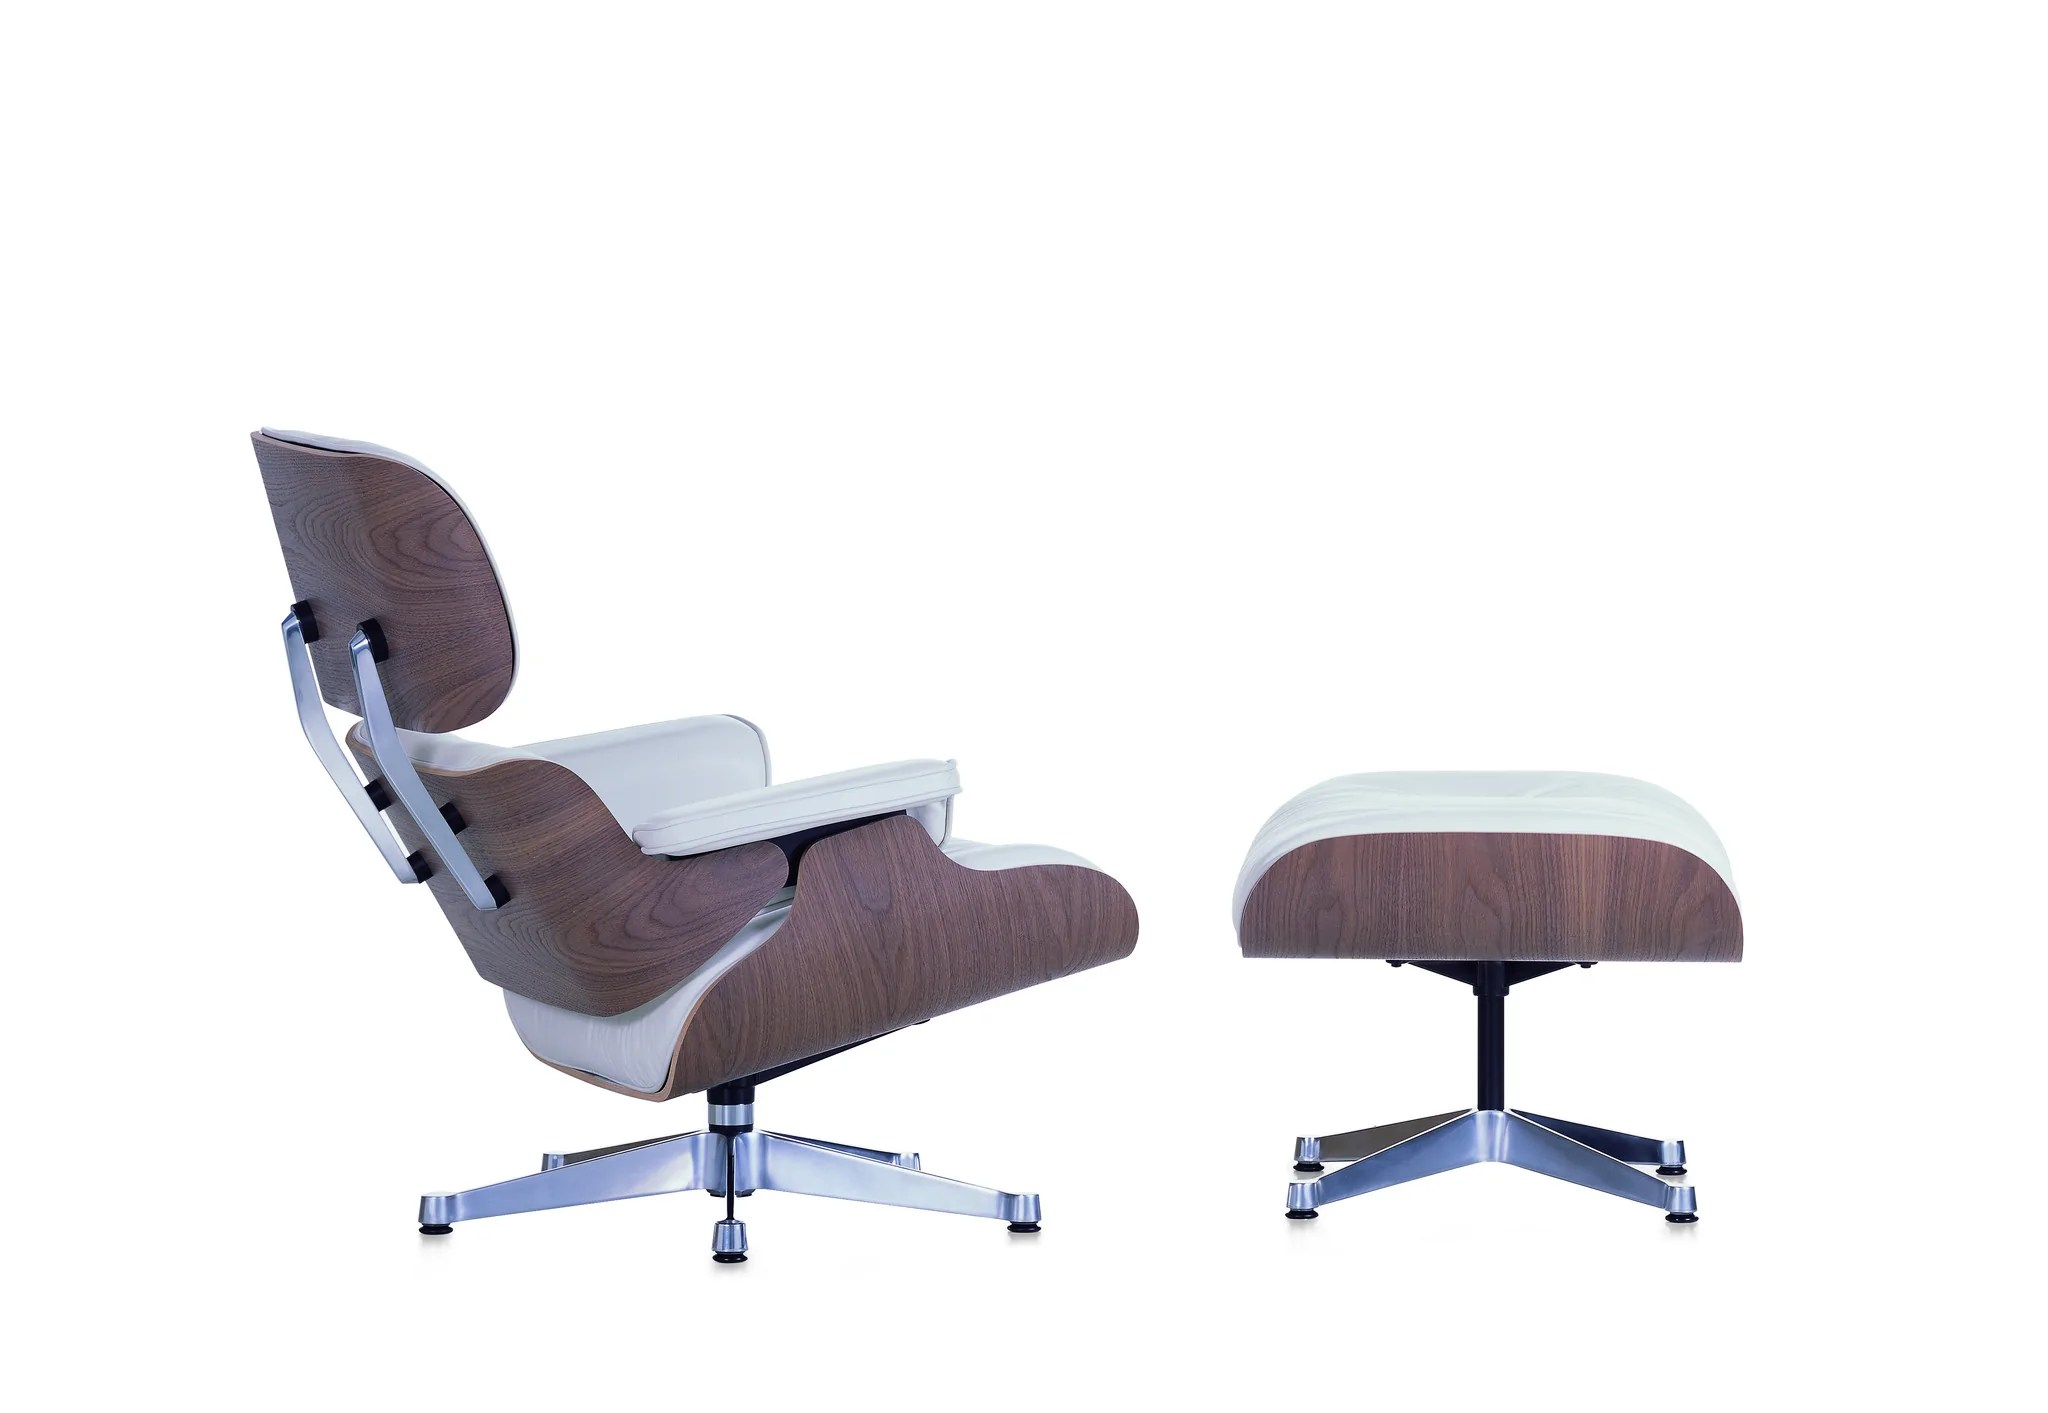 Vitra Eames Lounge Chair Dwg Eames Lounge Chair White Version